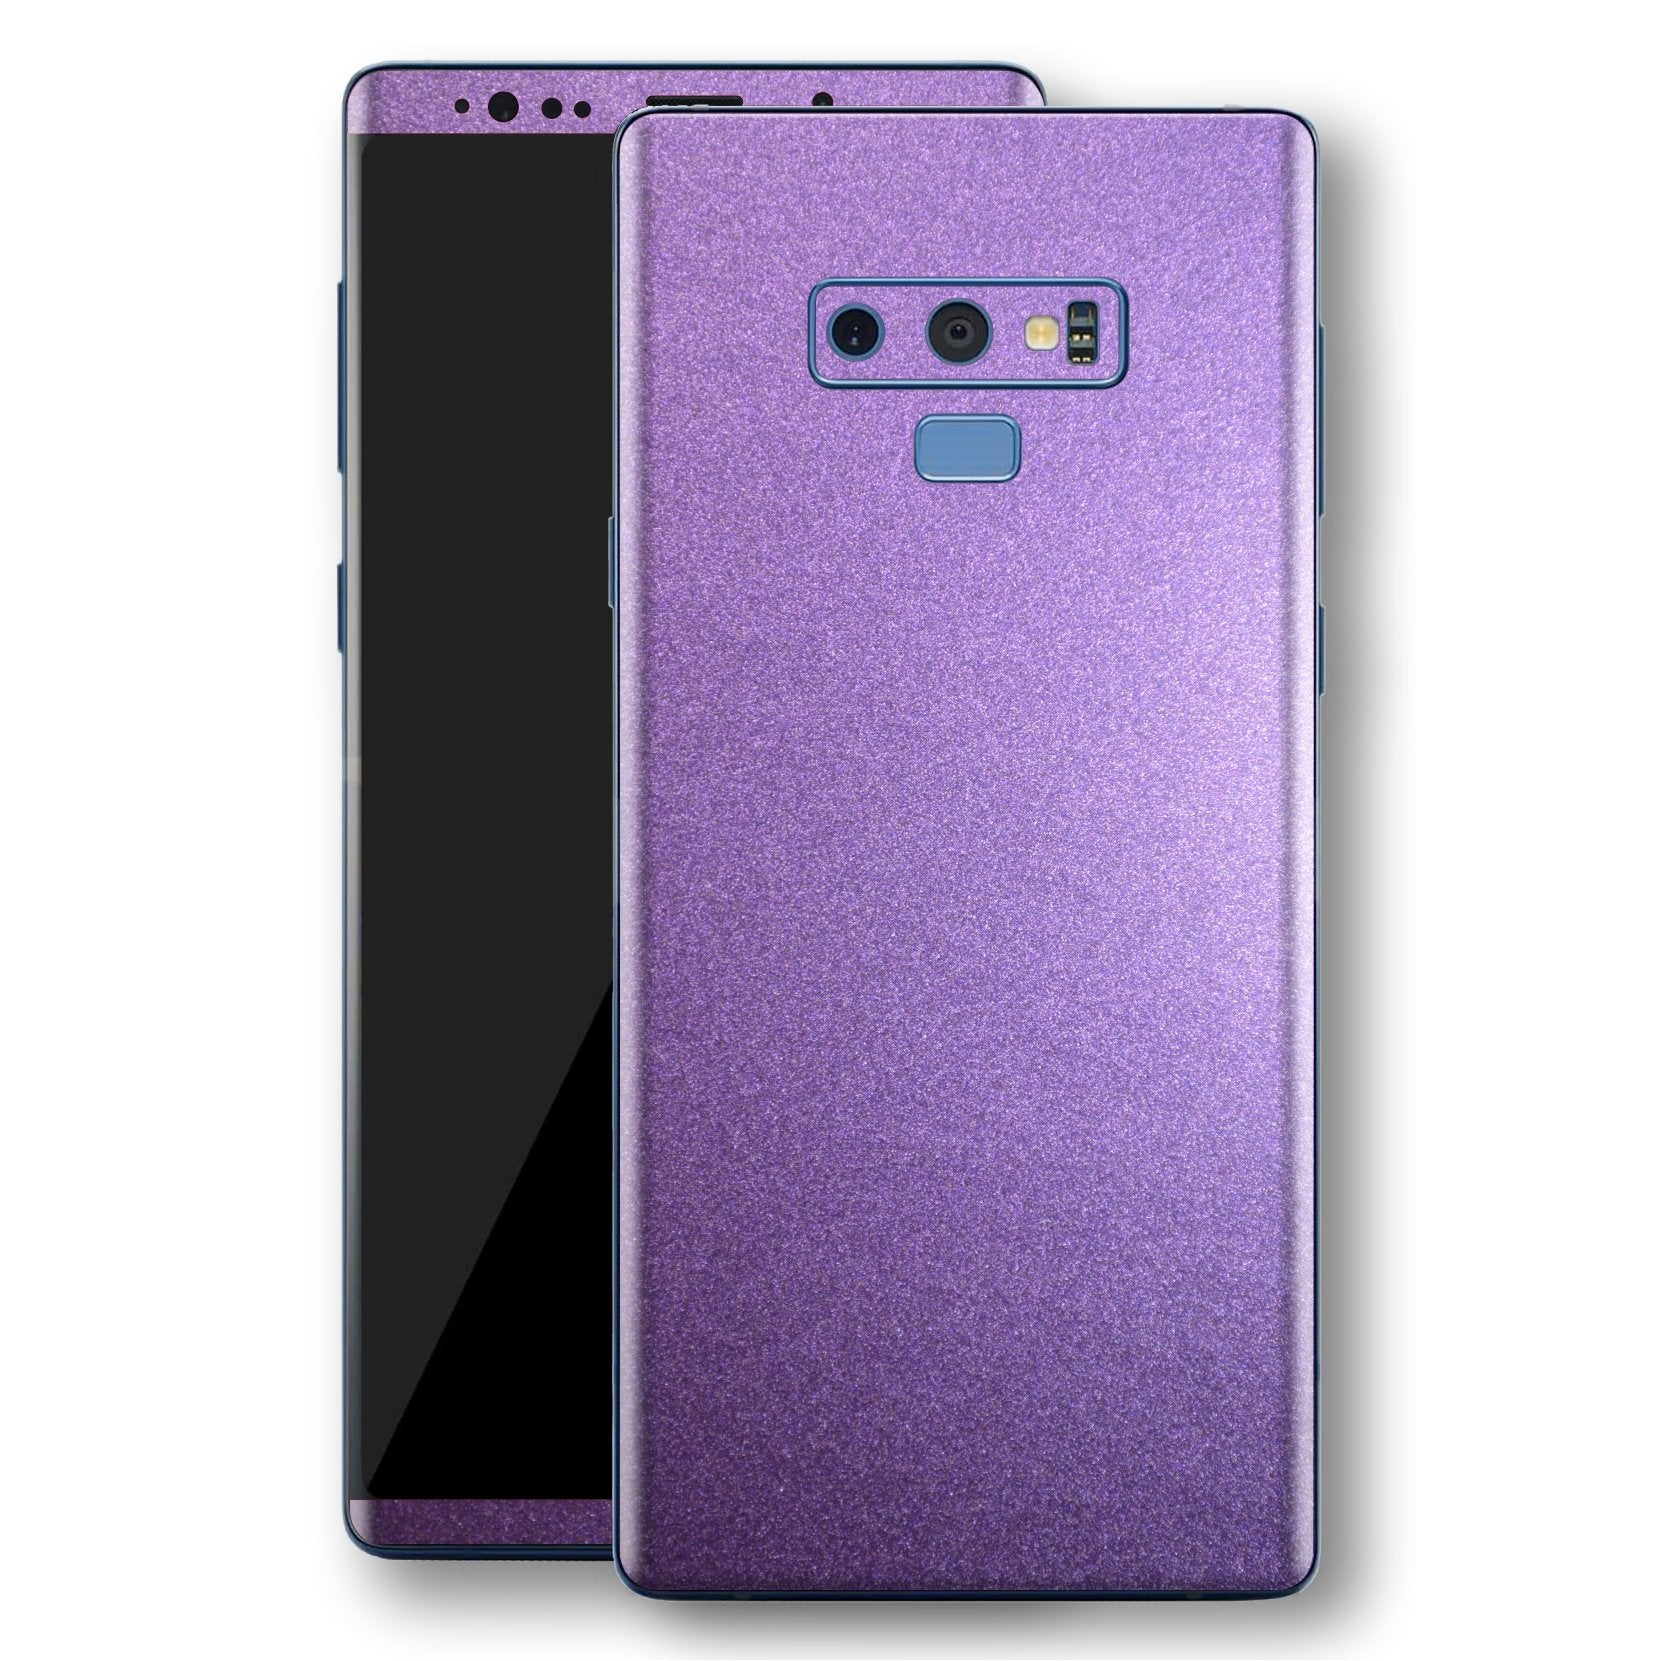 Samsung Galaxy NOTE 9 Violet Matt Metallic Skin, Decal, Wrap, Protector, Cover by EasySkinz | EasySkinz.com